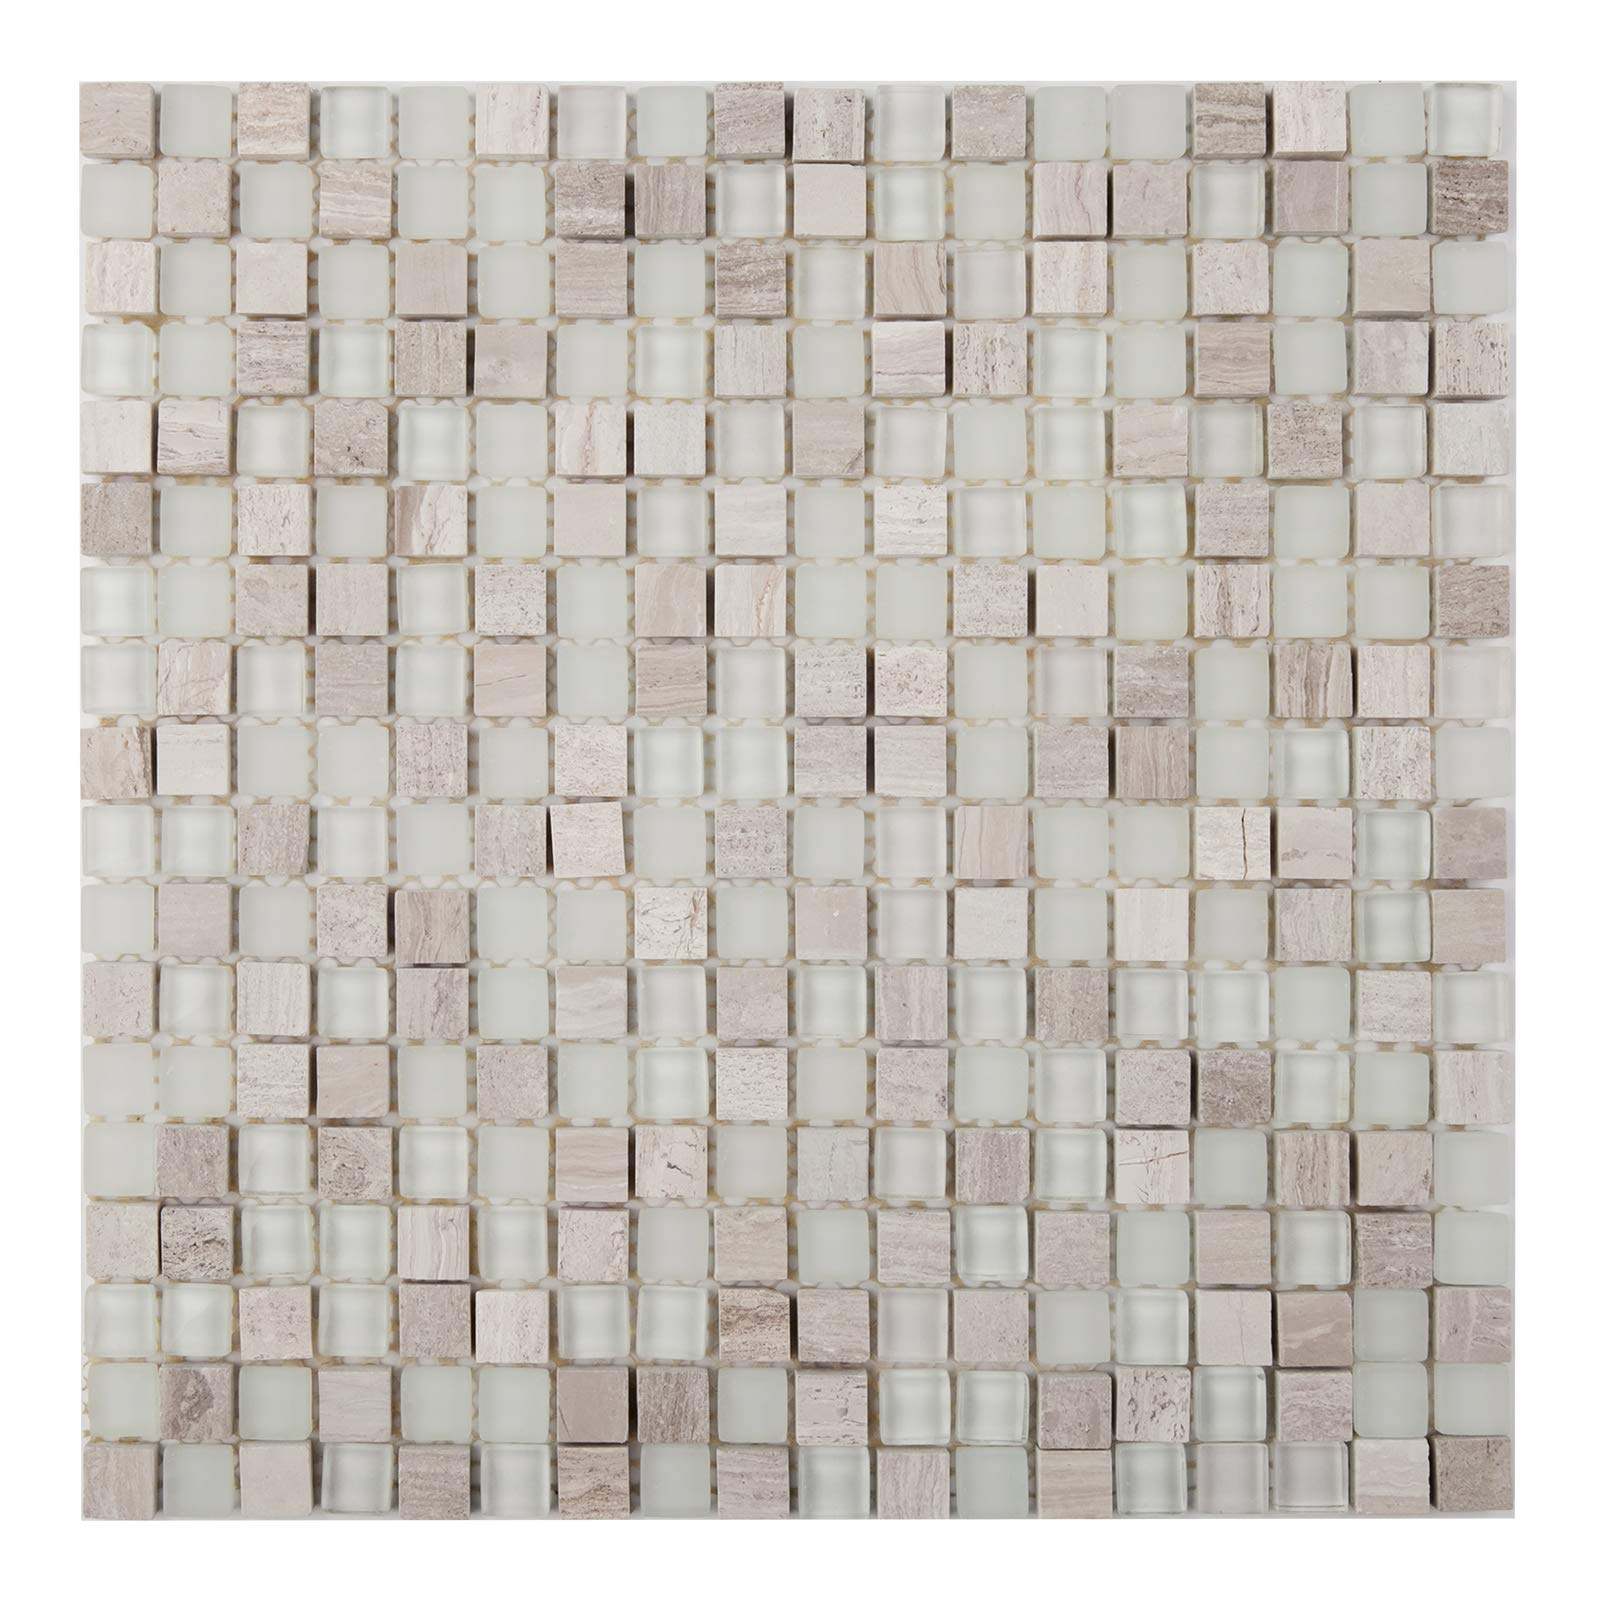 Glass and Stone Mosaic Tile, 15156, 5/8''x5/8'' Square,12''x12''x1/4'' (Box of 5 Sheets)